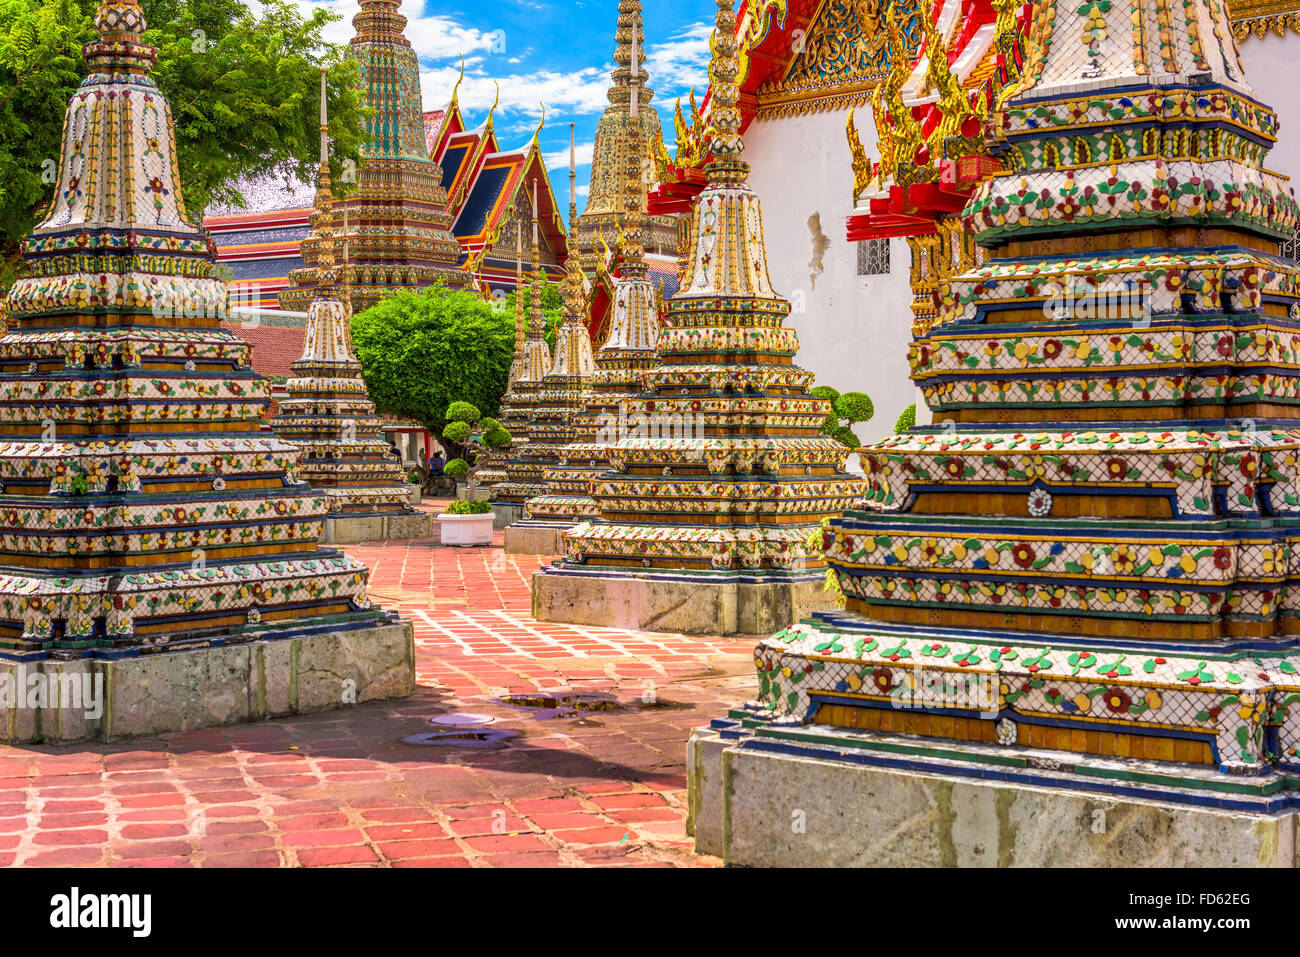 Wat Pho Temple grounds in Bangkok, Thailand. - Stock Image